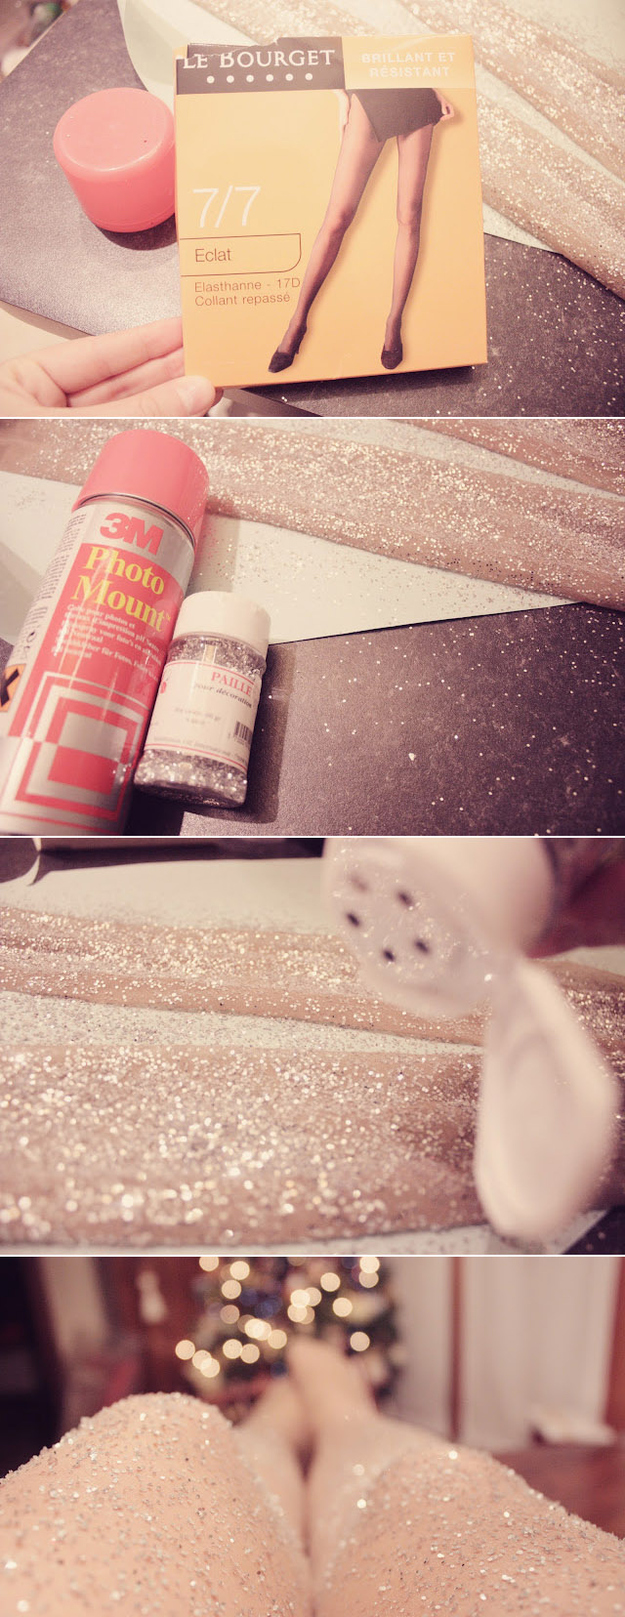 AD-Sparkling-DIY-Decoration-Ideas-To-Jazz-Up-Your-Life-36